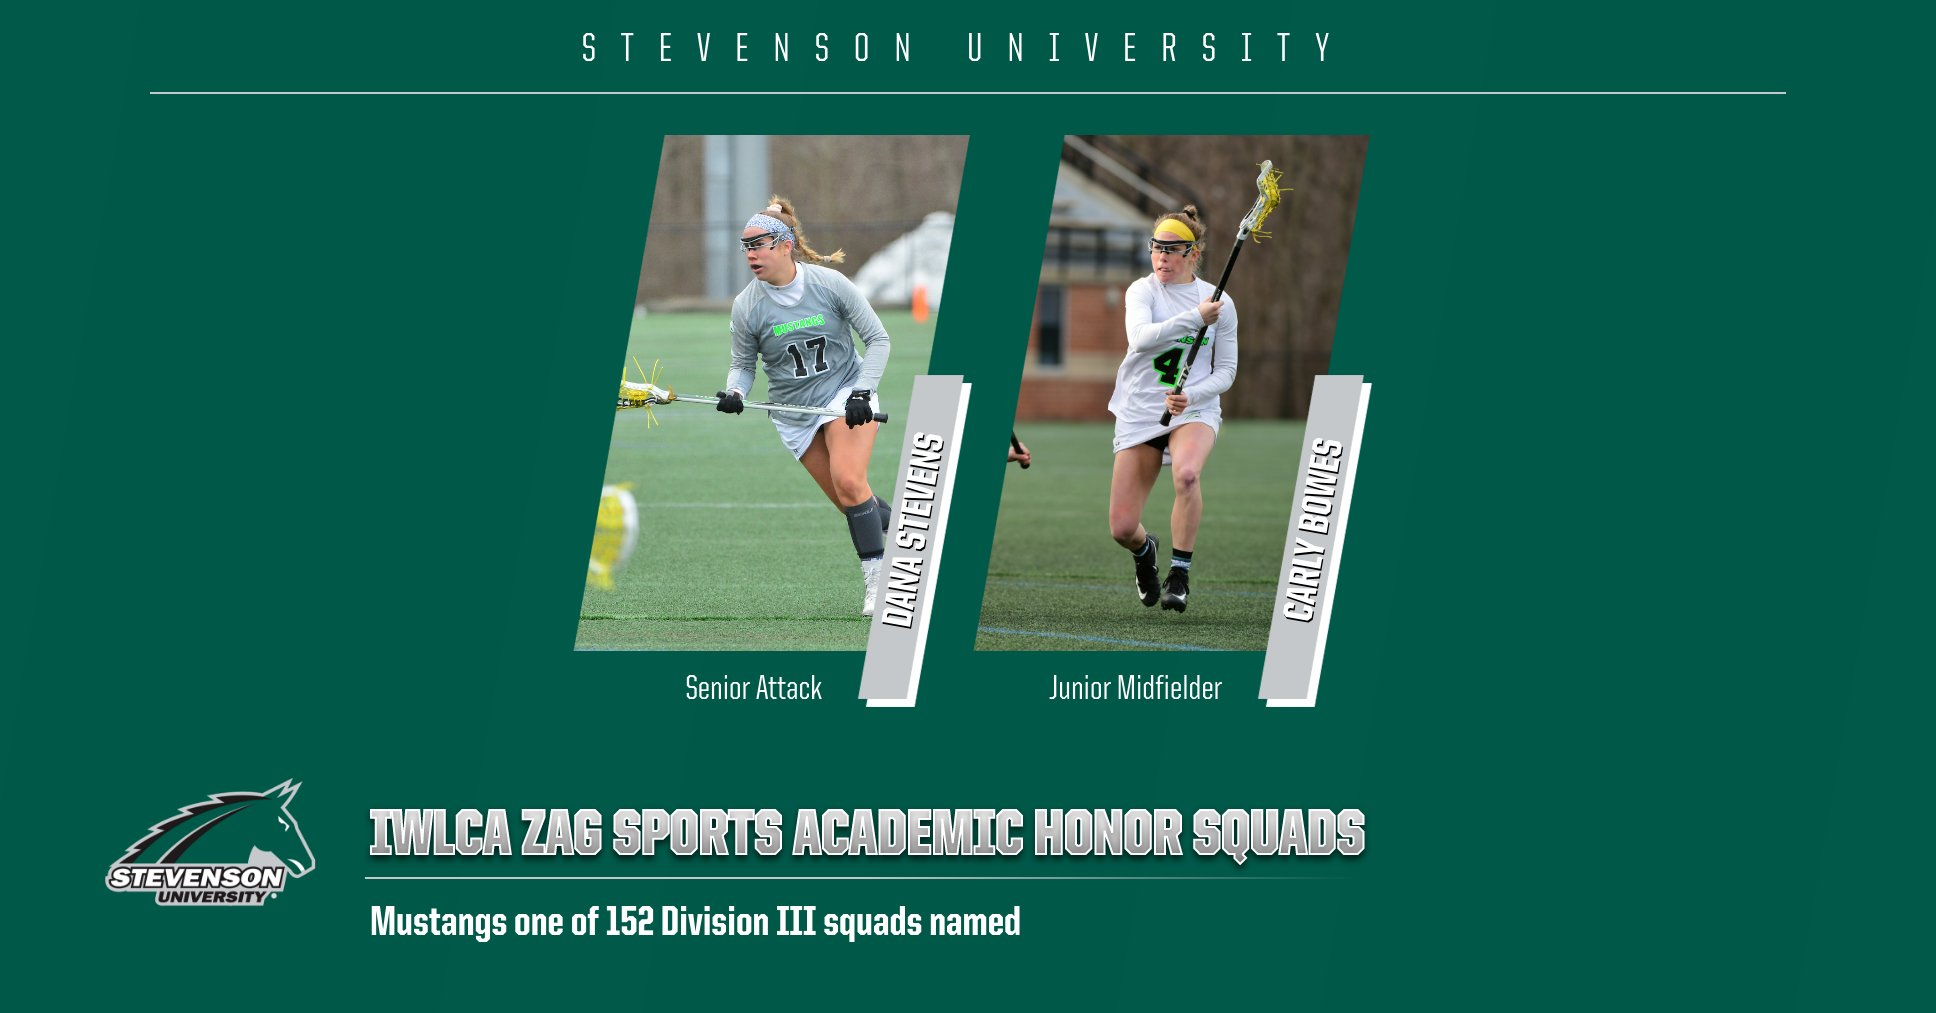 Mustangs, Two Student-Athletes Earn IWLCA Academic Accolades